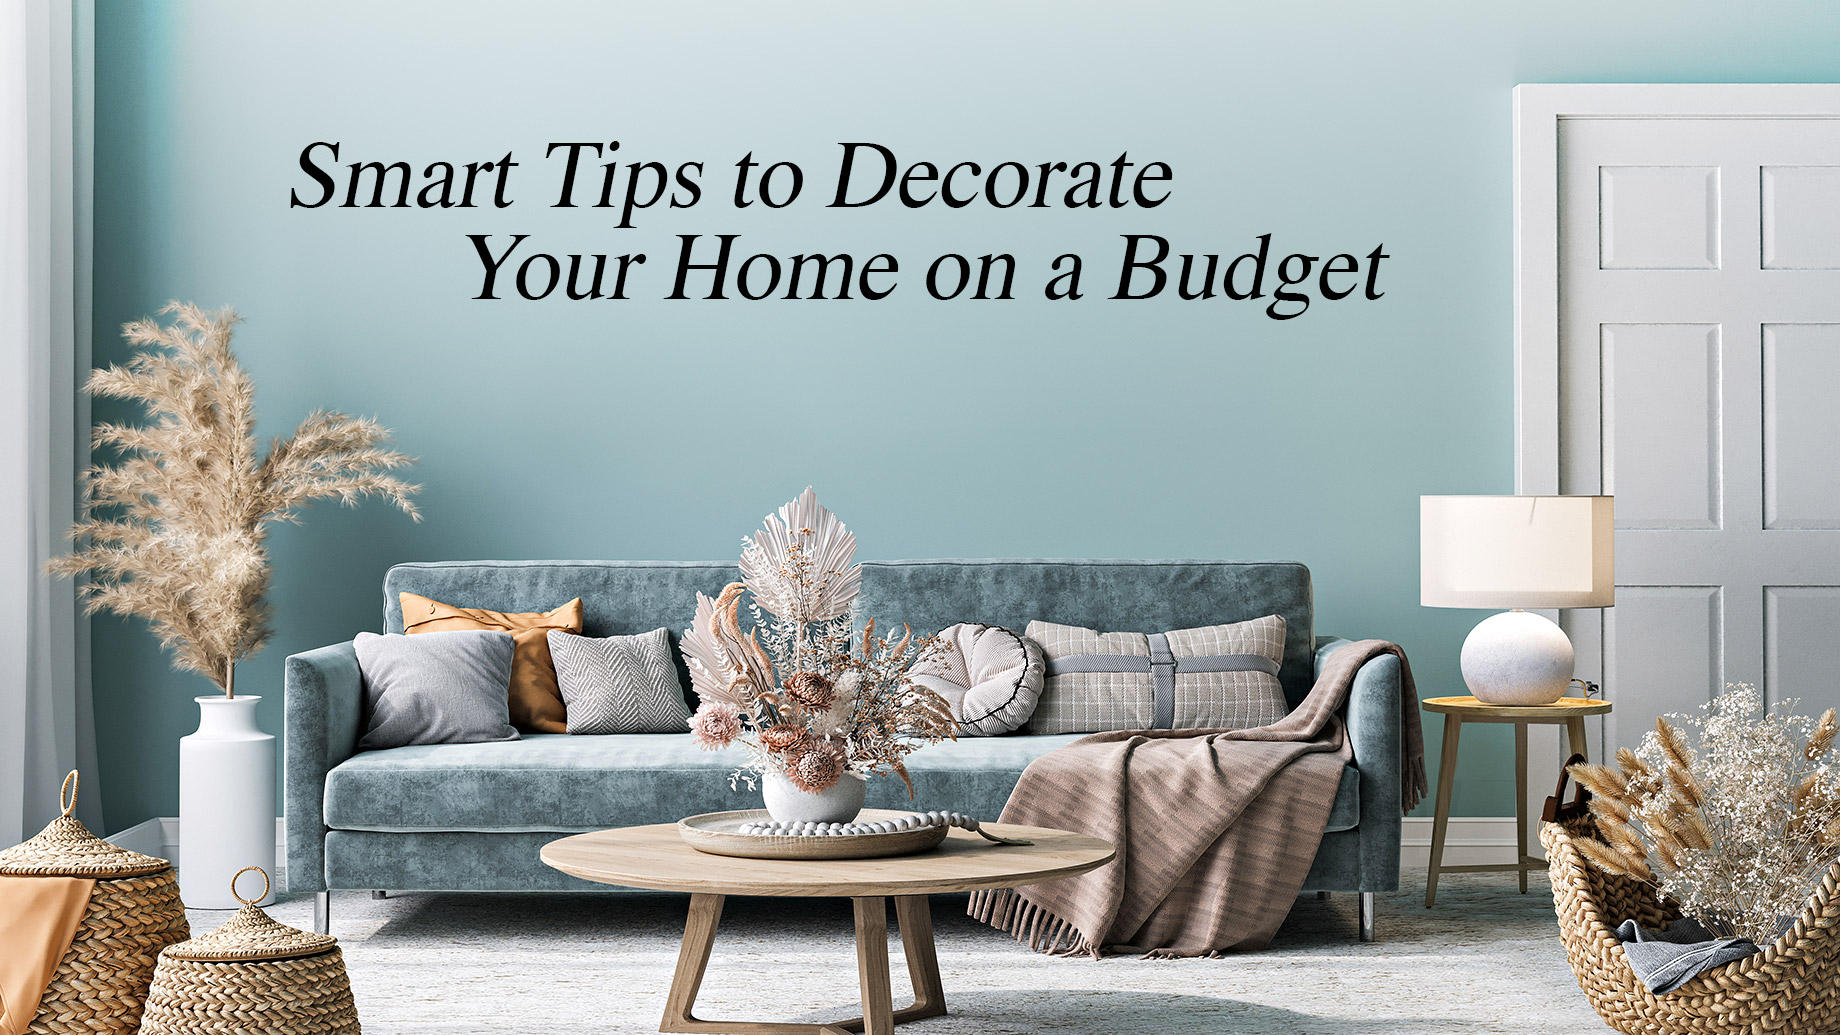 Smart Tips to Decorate Your Home on a Budget